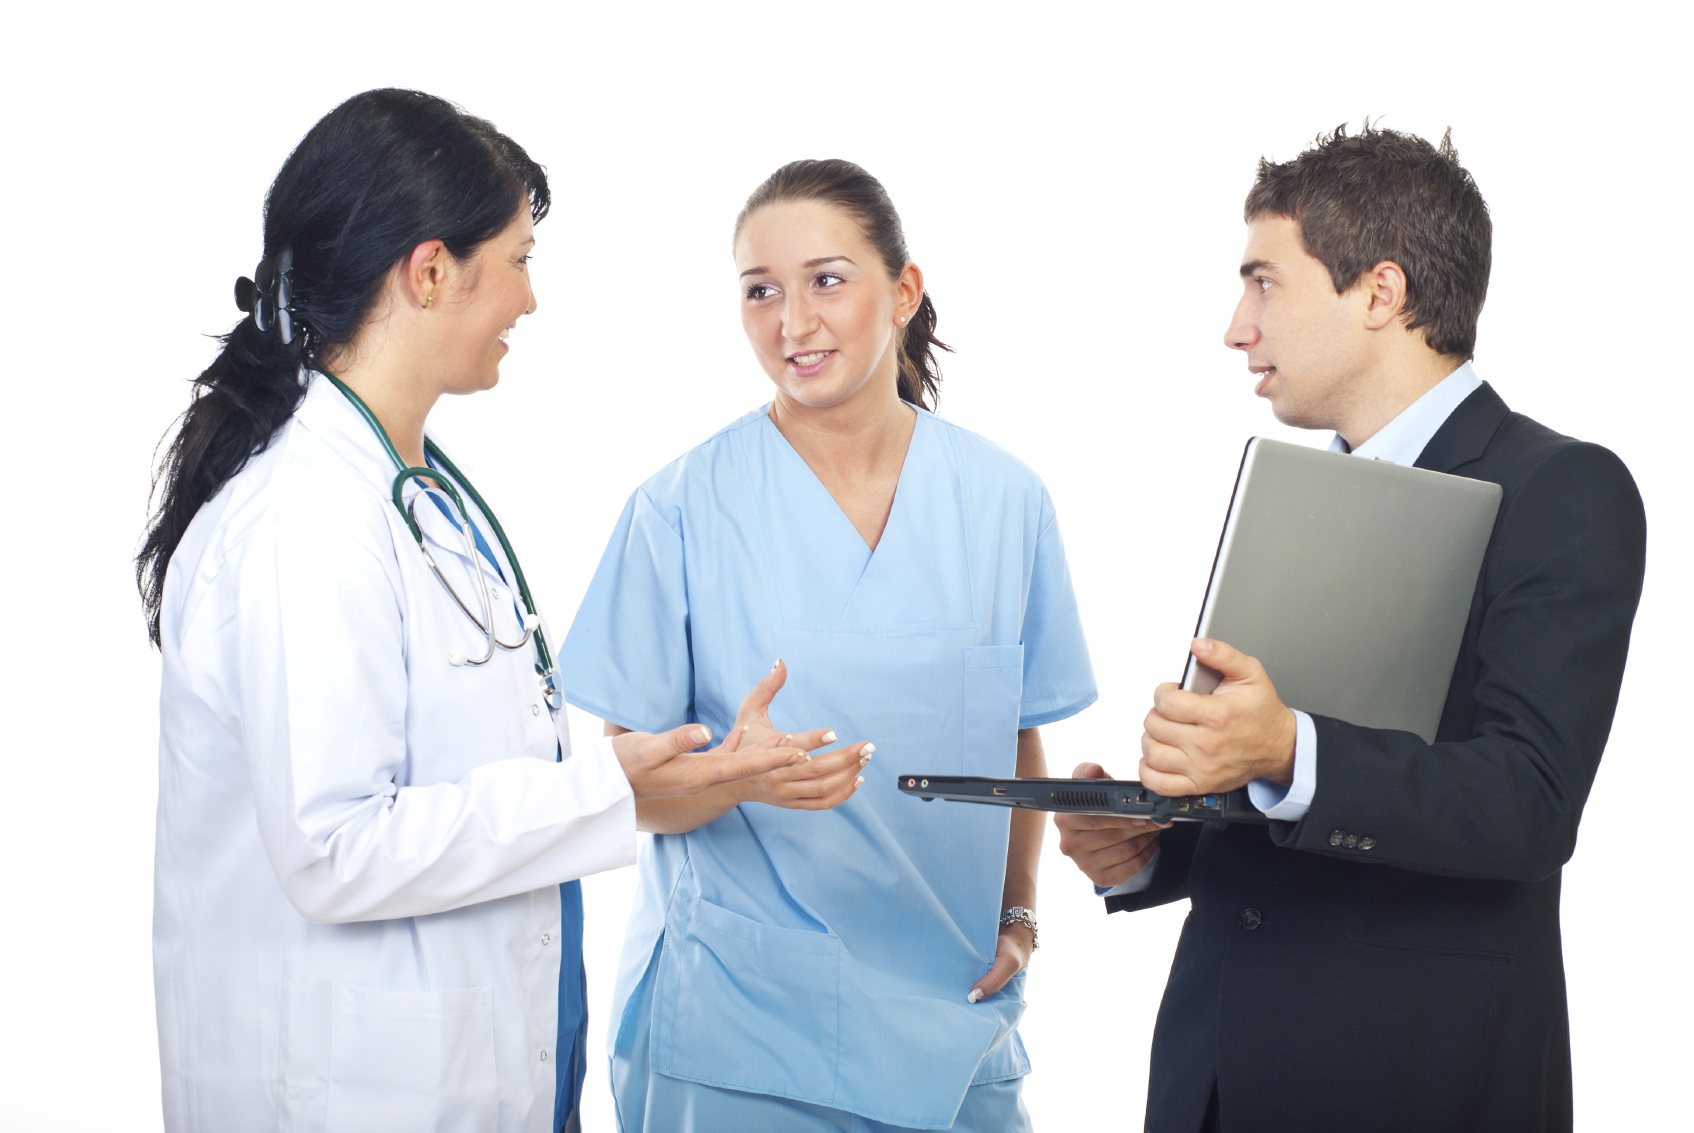 Health IT developer with health care providers